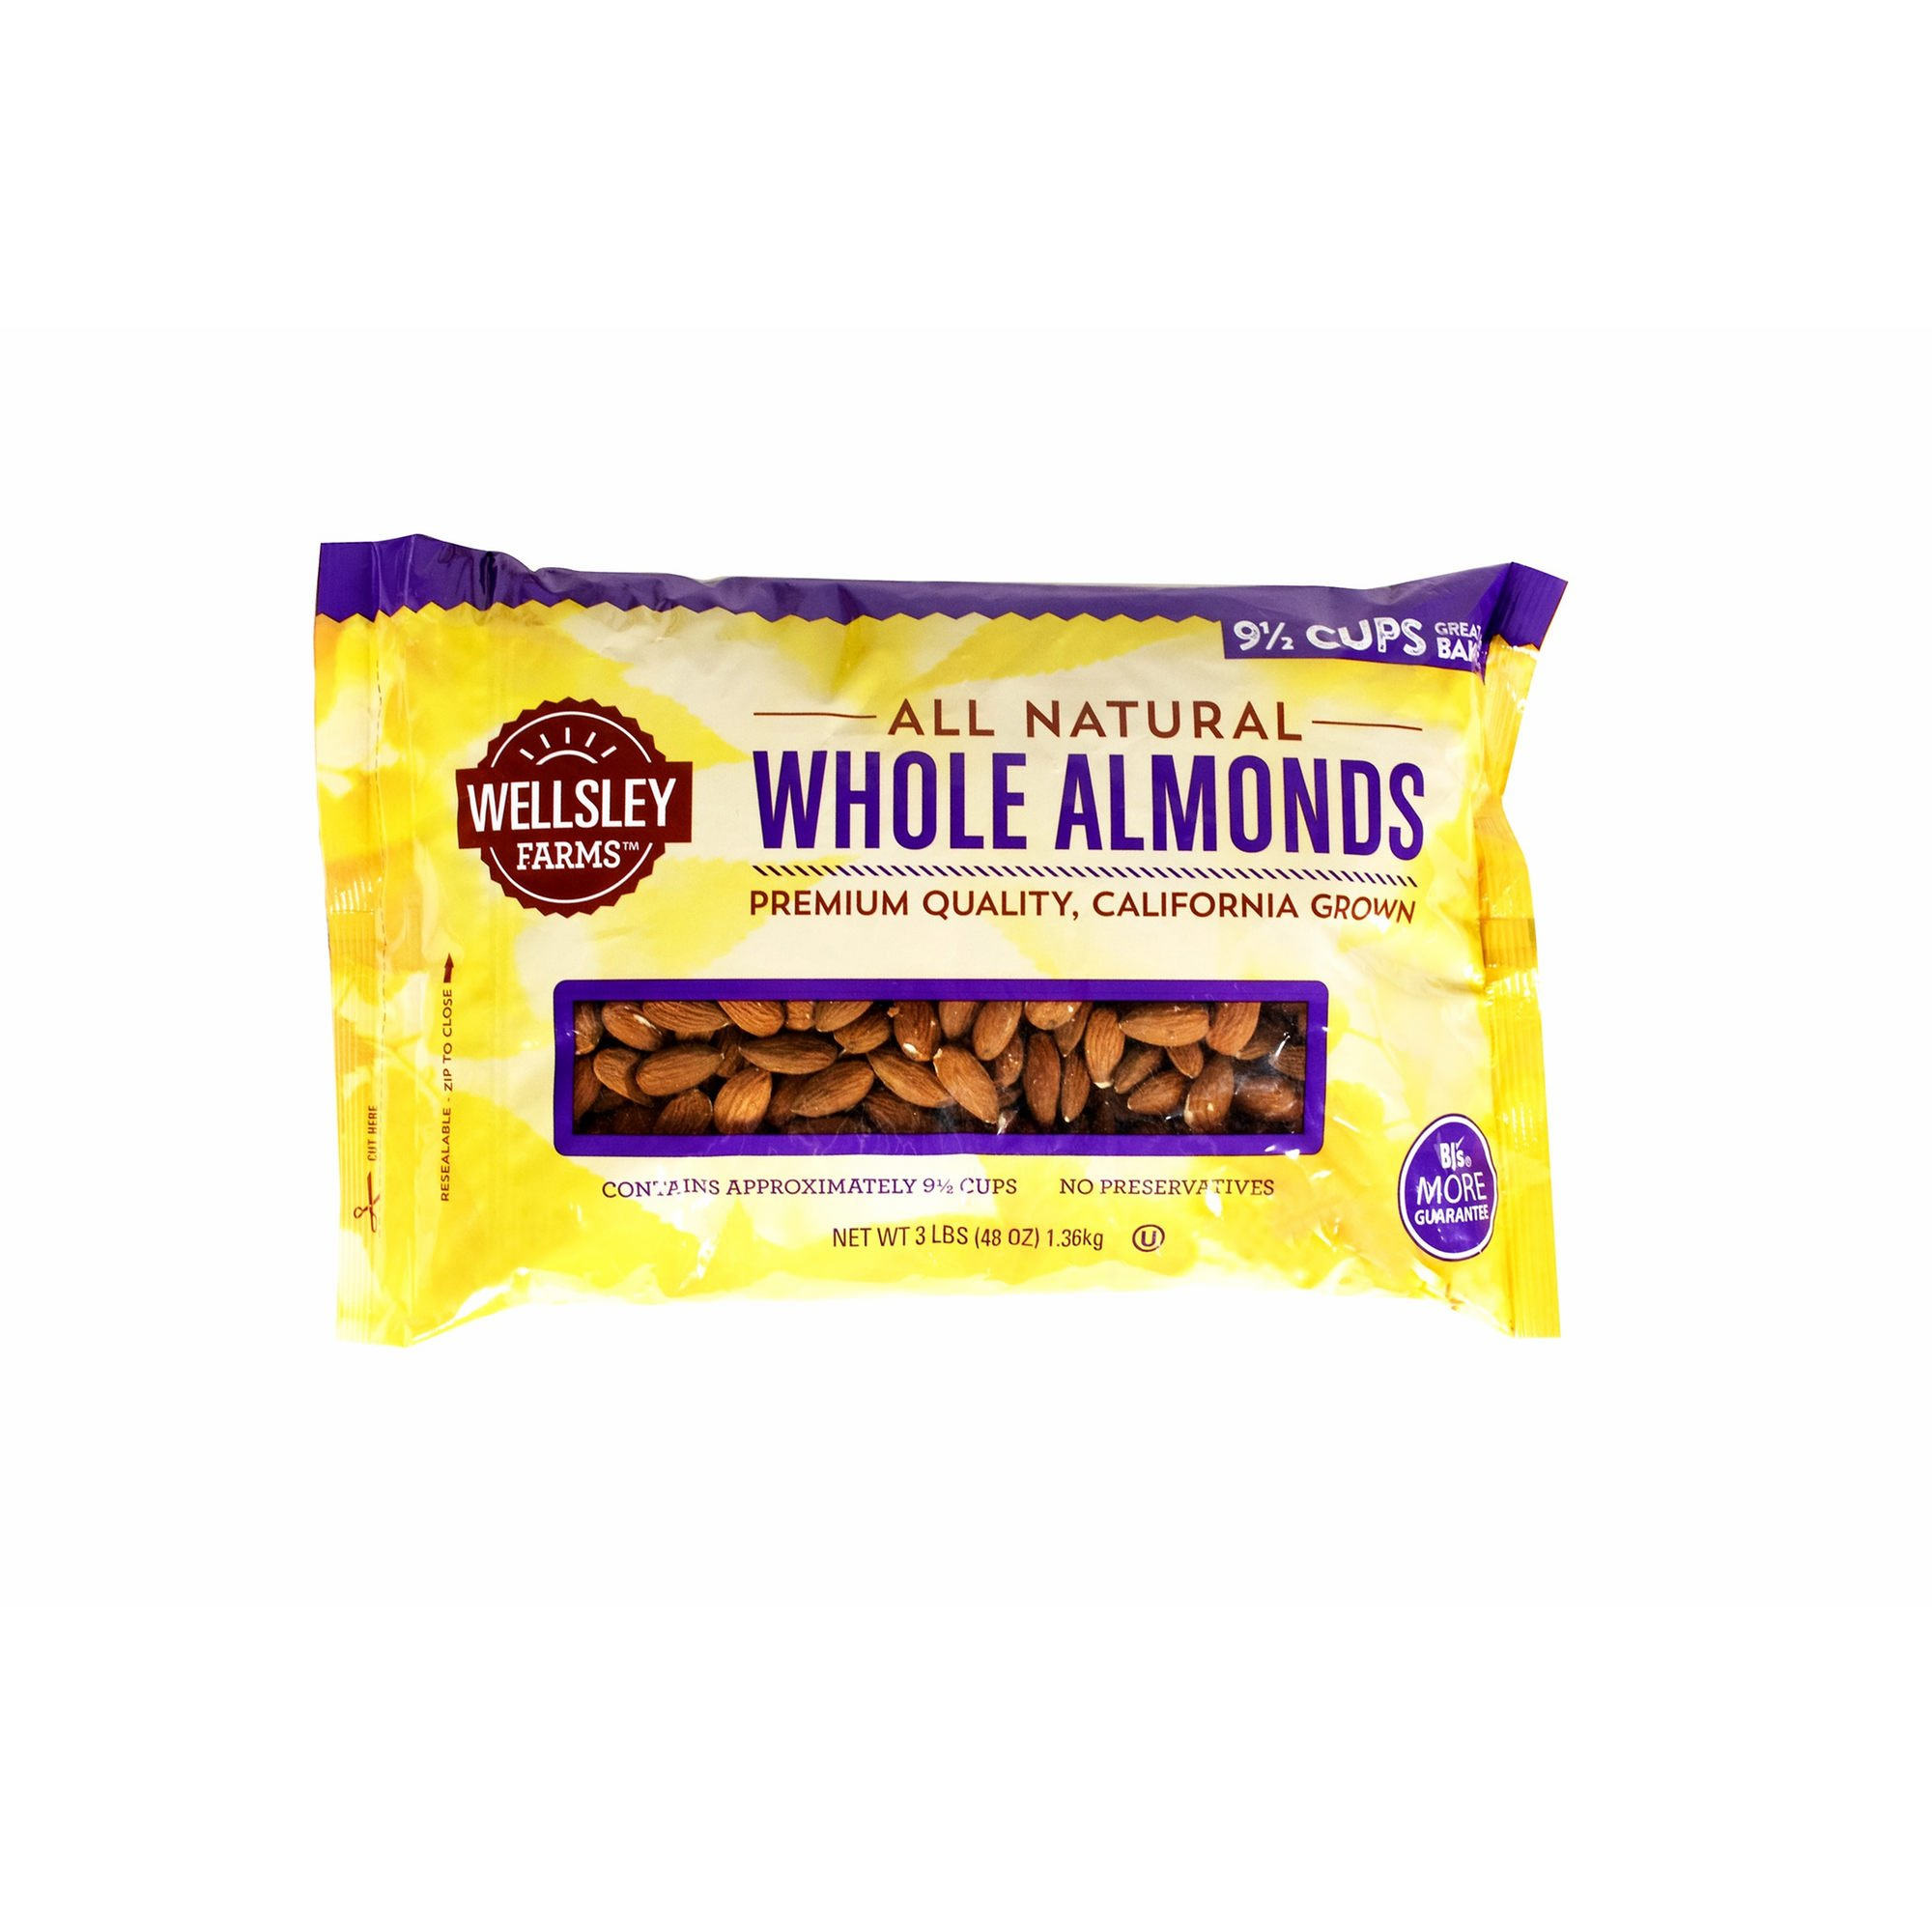 Wellsley Farms Whole Almonds, 48 oz. (pack of 6)